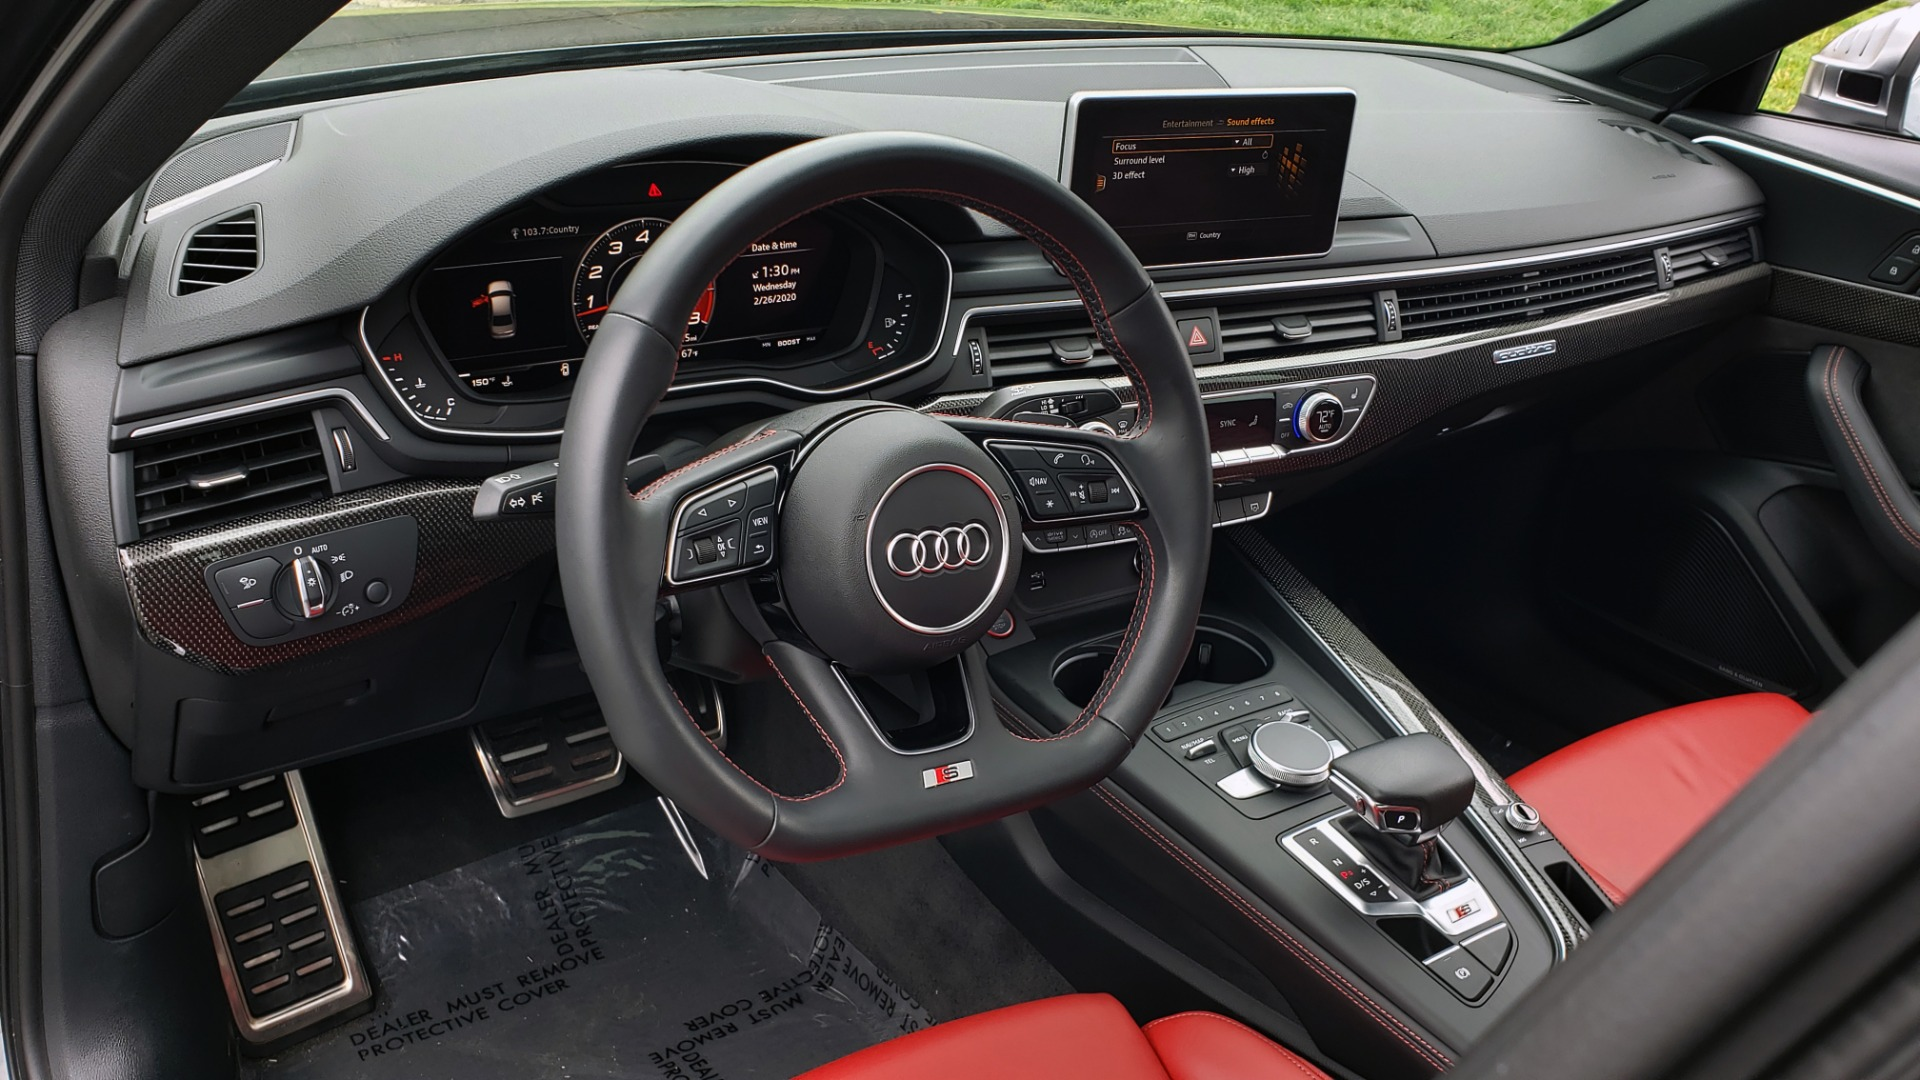 Used 2019 Audi S4 PREMIUM PLUS / AWD / NAV / SUNROOF / B&O SOUND / REARVIEW for sale Sold at Formula Imports in Charlotte NC 28227 39